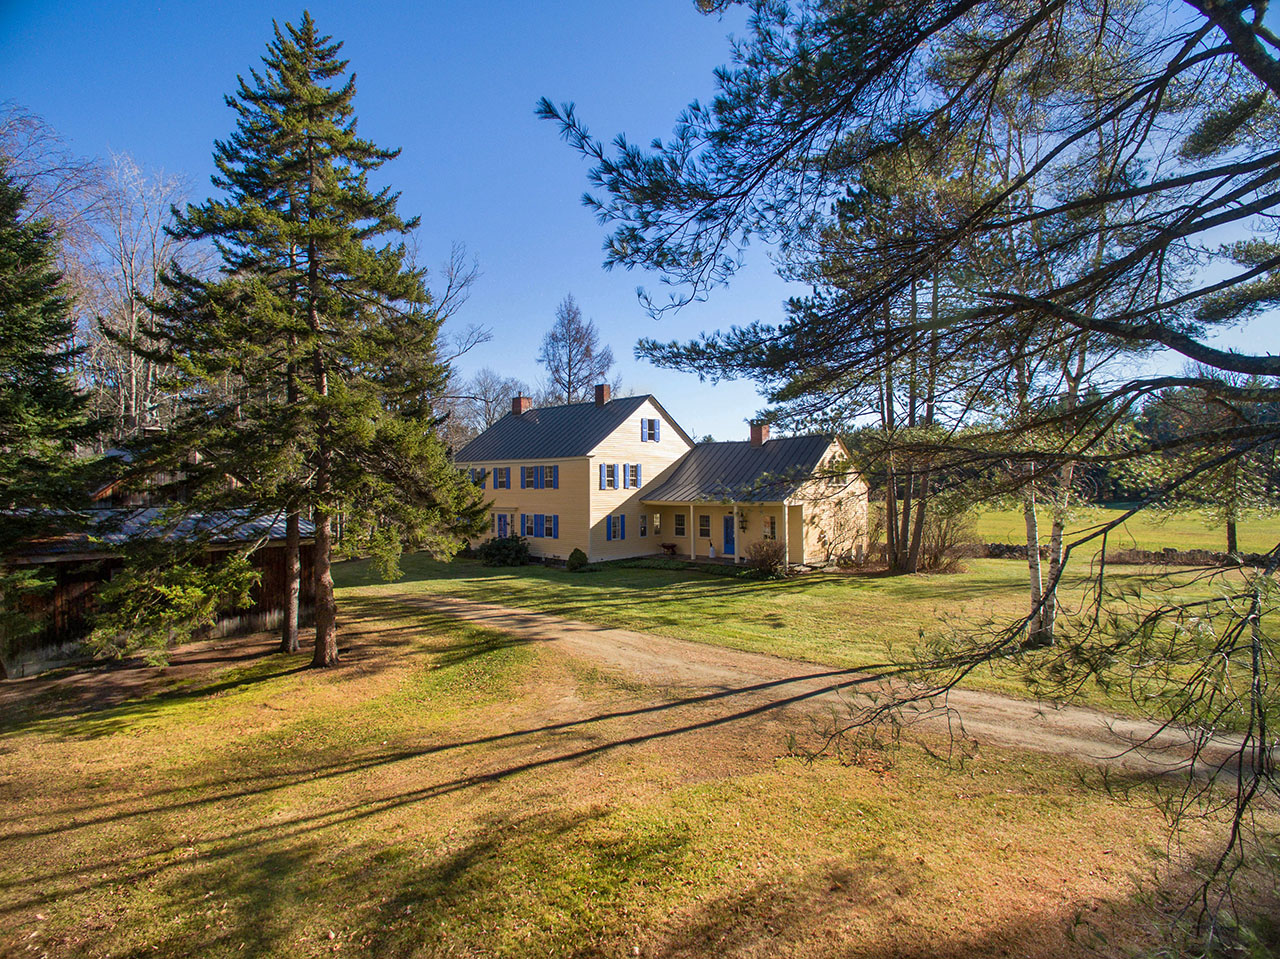 New england homes for the skier me1071 me1215 nh0440 for Vermont country homes